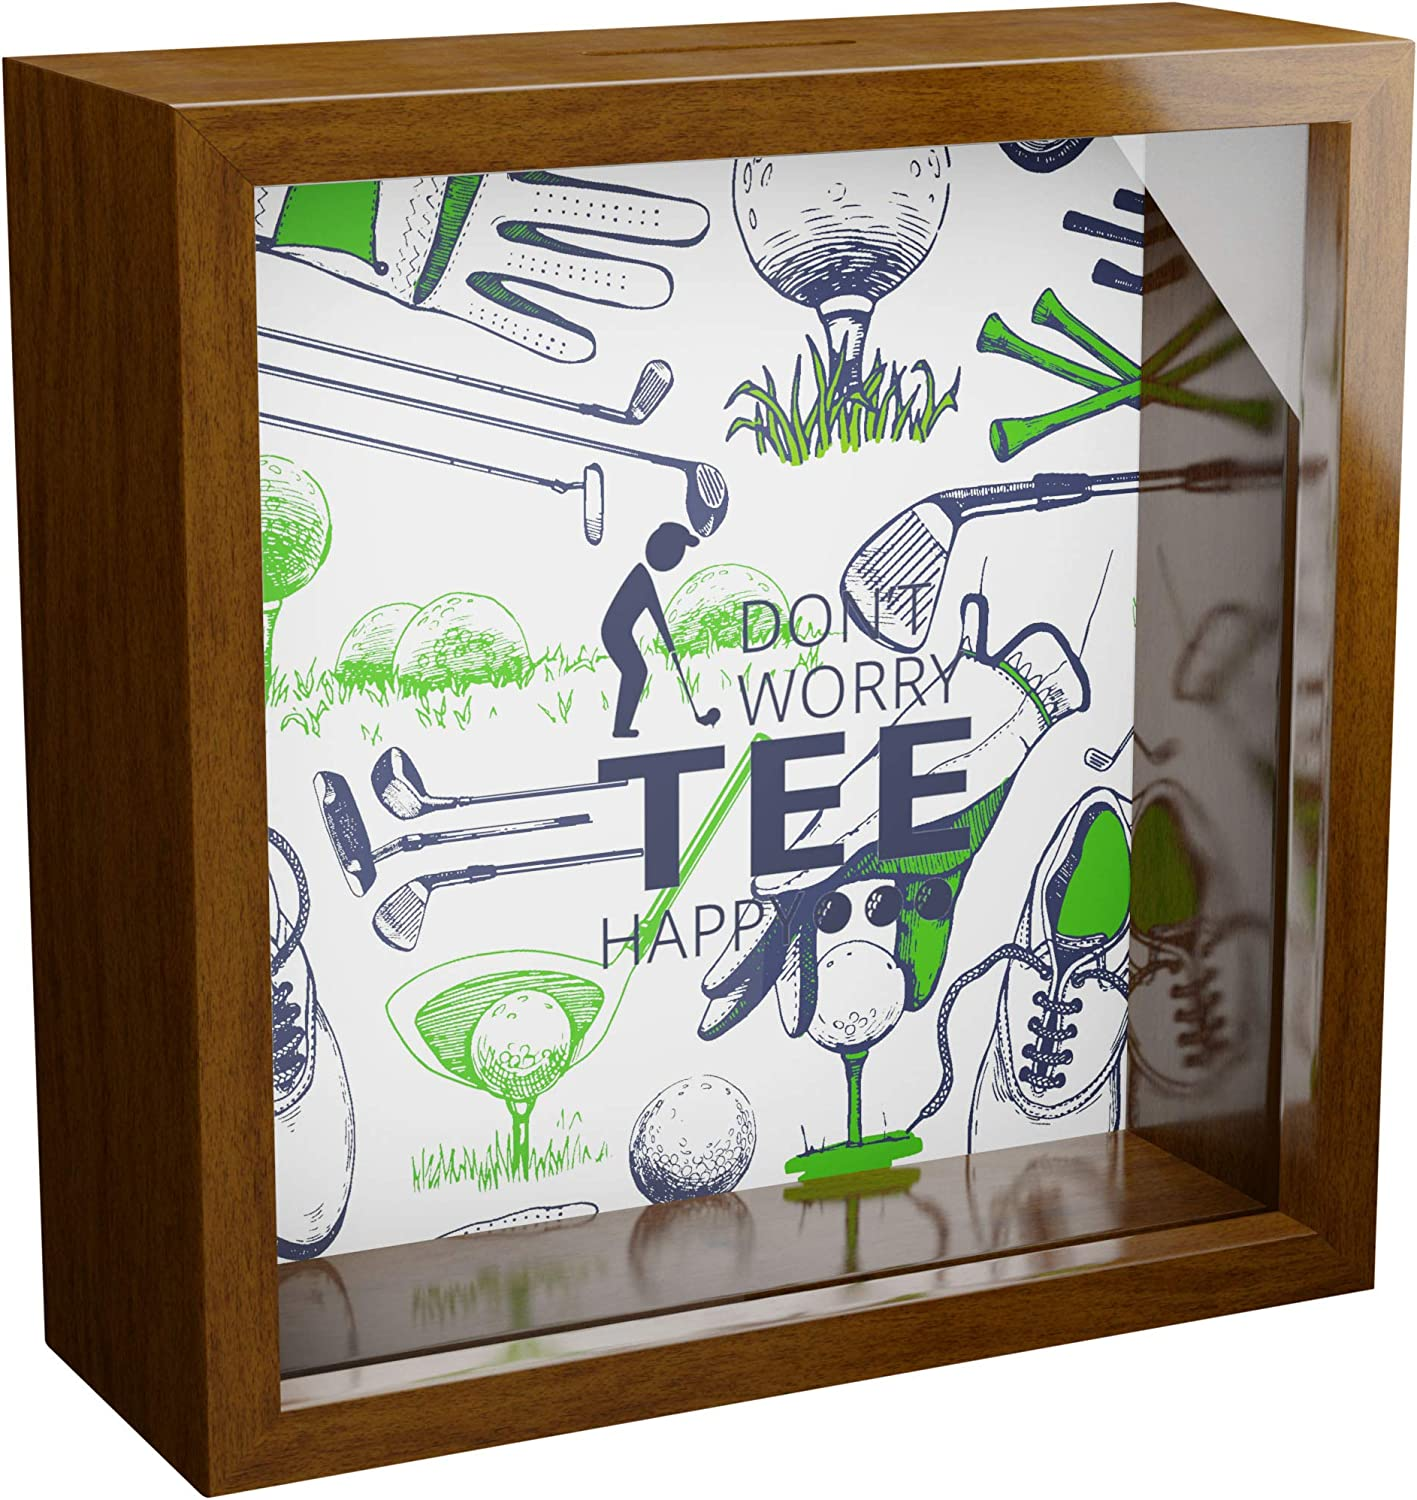 iframes Golf Gifts for Men | 6x6x2 Wooden Shadow Box | Golfing Themed Keepsake with Glass Front | Ideal Gift for Golfer | Special Golfers Present for Dad or Grandpa | Great for Office or Home Decor